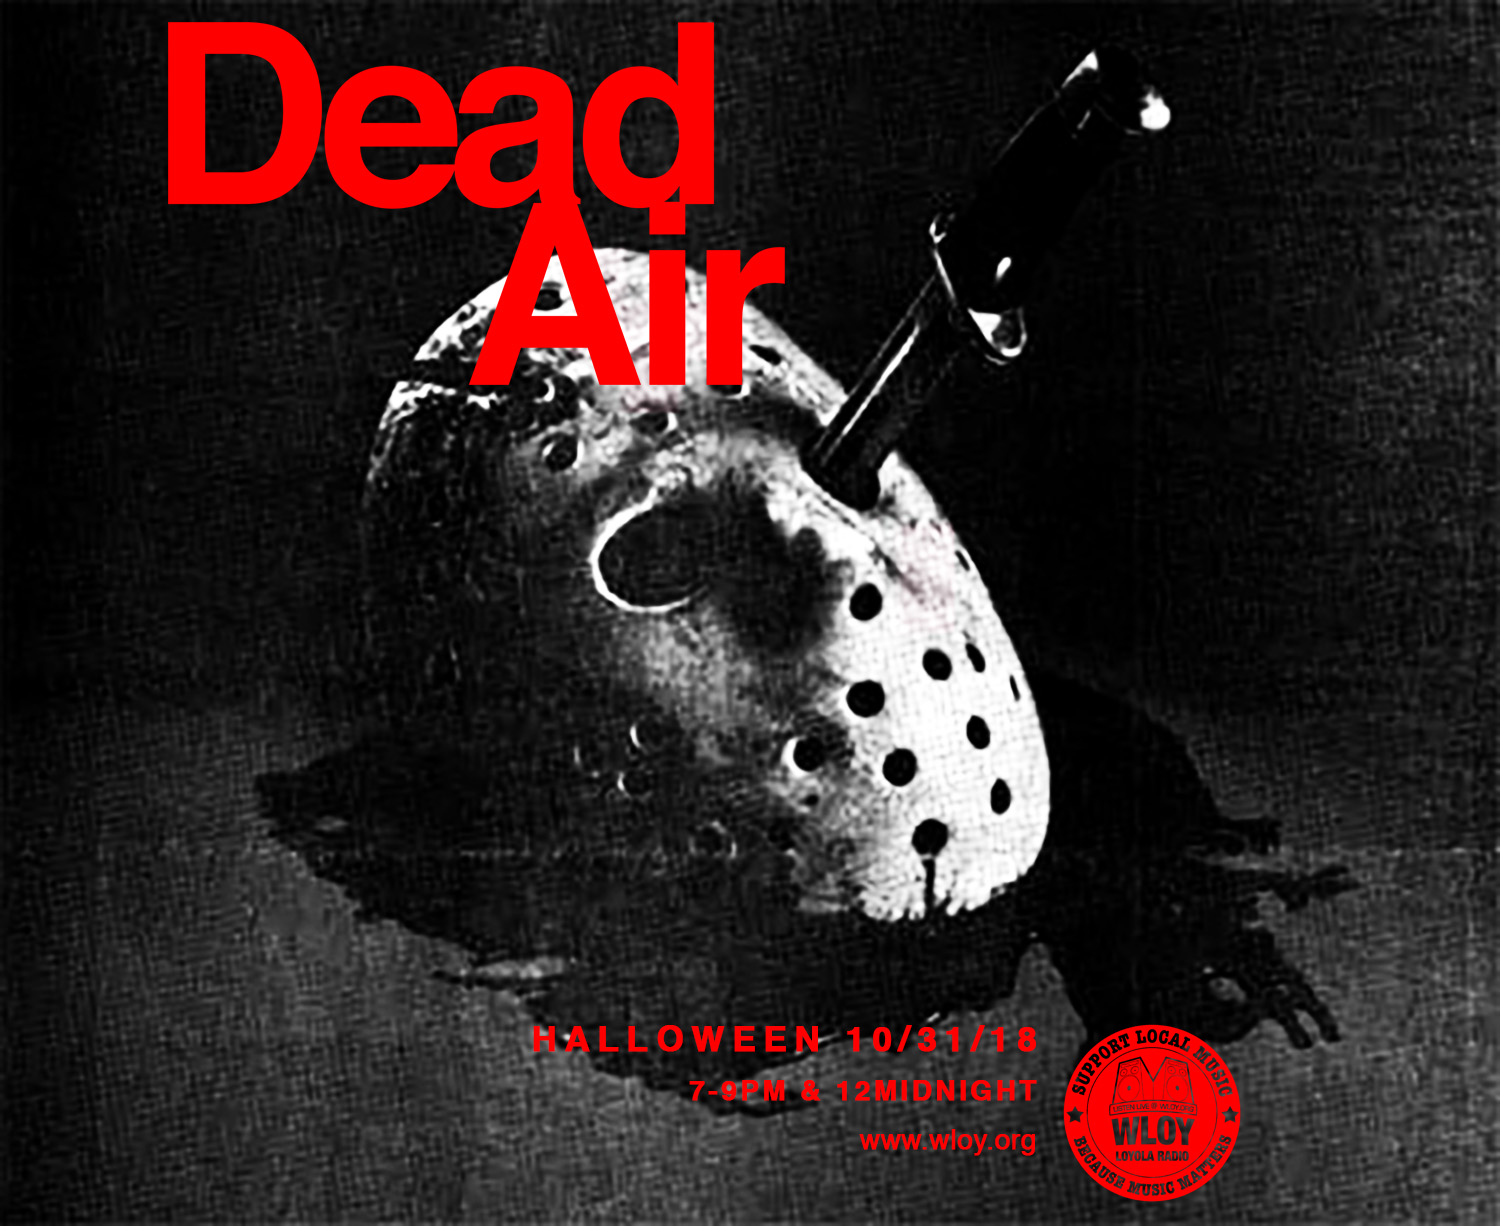 Deadairhaloween